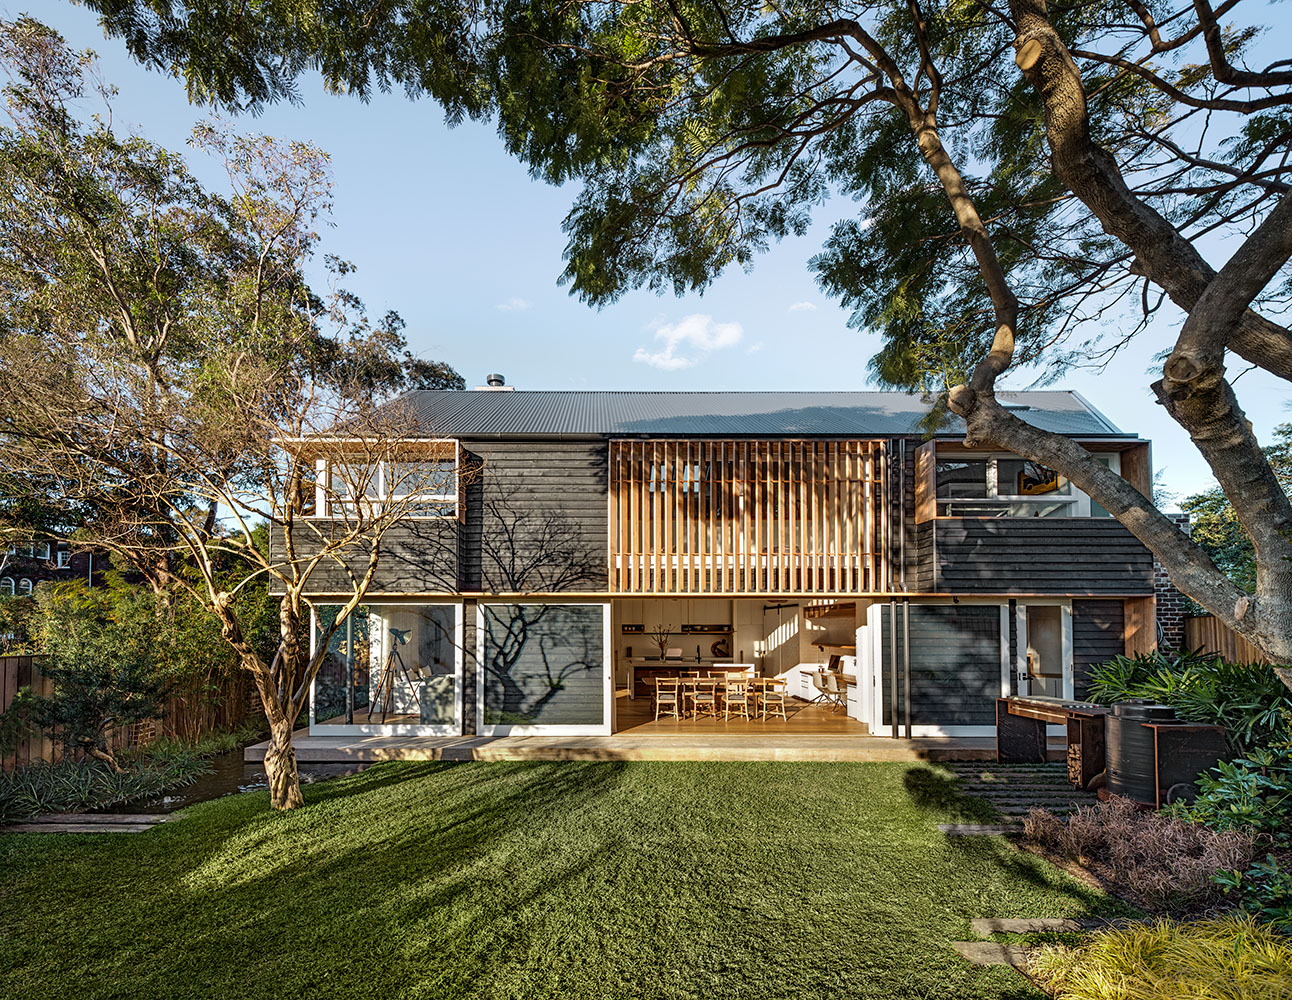 bondi_barn_clayton_orzarsky_architects_william_dangar_landscapes_architectural_photography_murray_fredericks